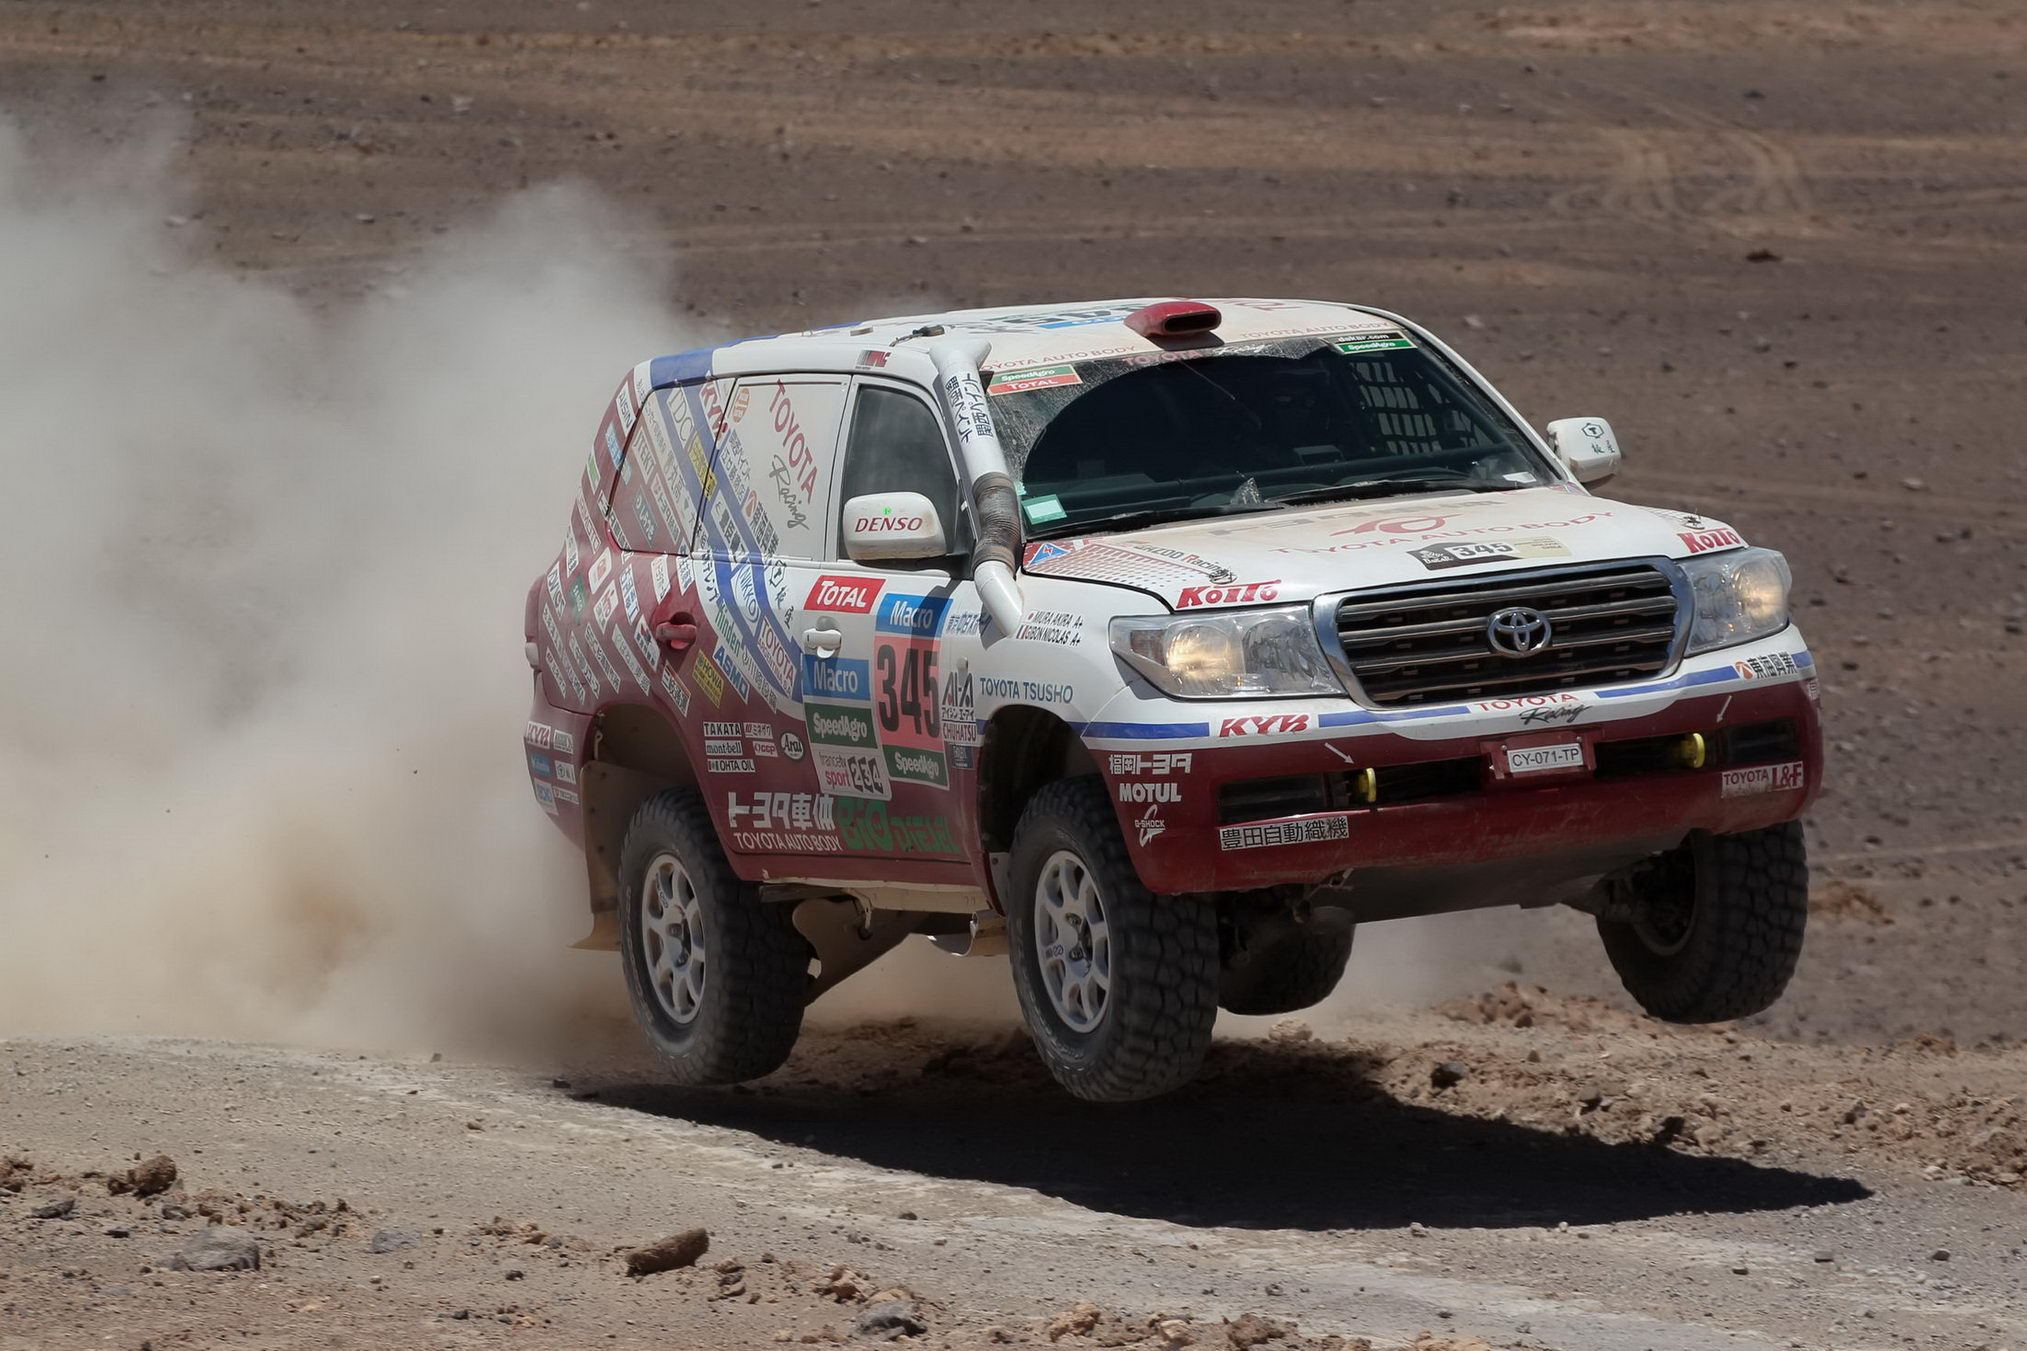 Hilux of Giniel De Villiers (#303 Imperial Toyota) drove aggressively and finished 2nd in the stage A total of four Hiluxes finished in the top 10 today